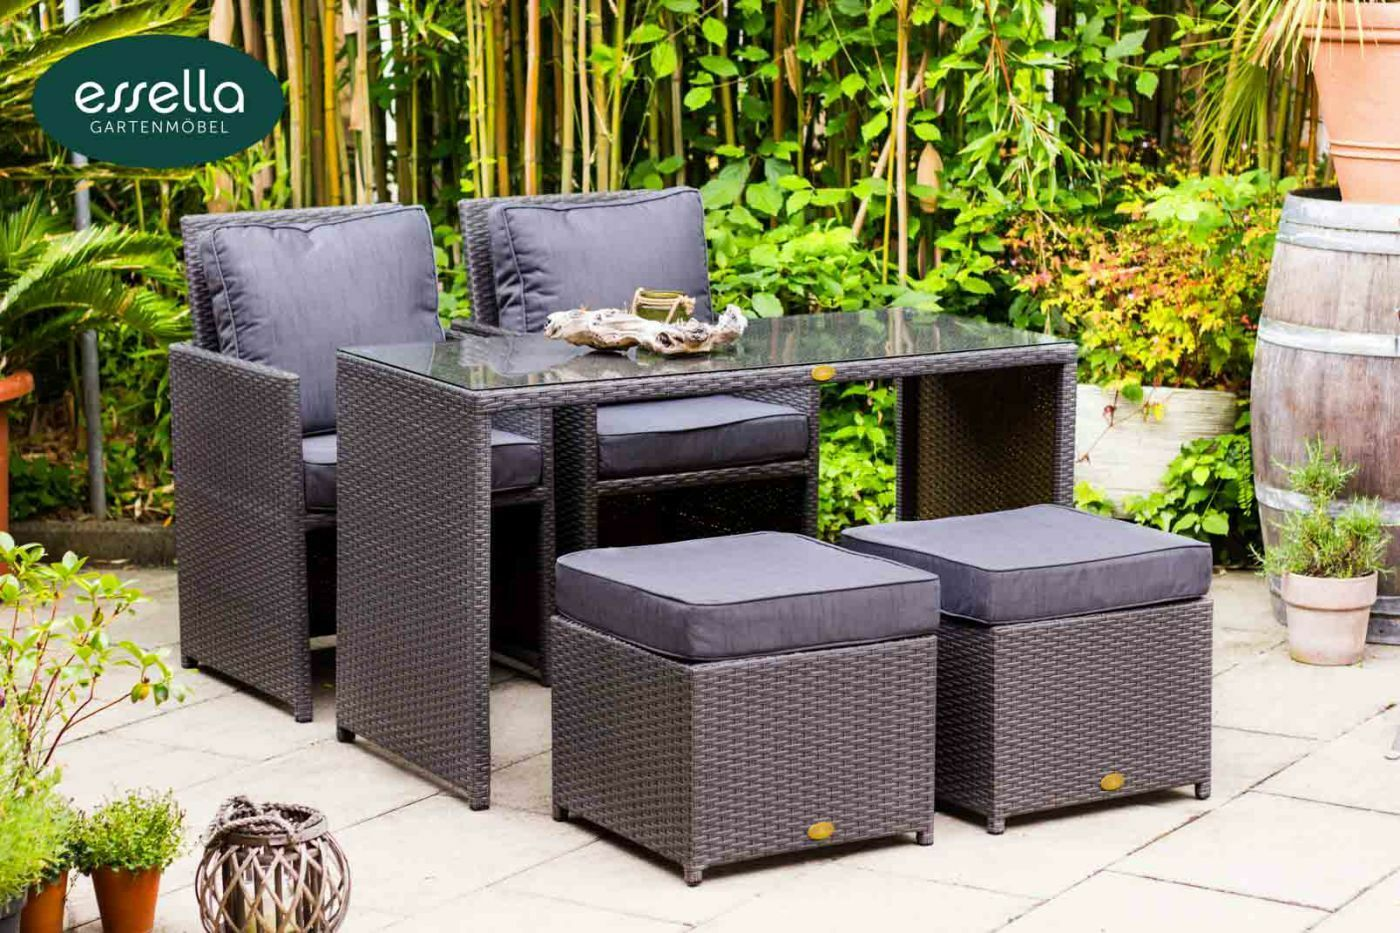 essella polyrattan gartenm bel essgruppe sitzgruppe rattan gartenset cube w rfel eur 576 45. Black Bedroom Furniture Sets. Home Design Ideas